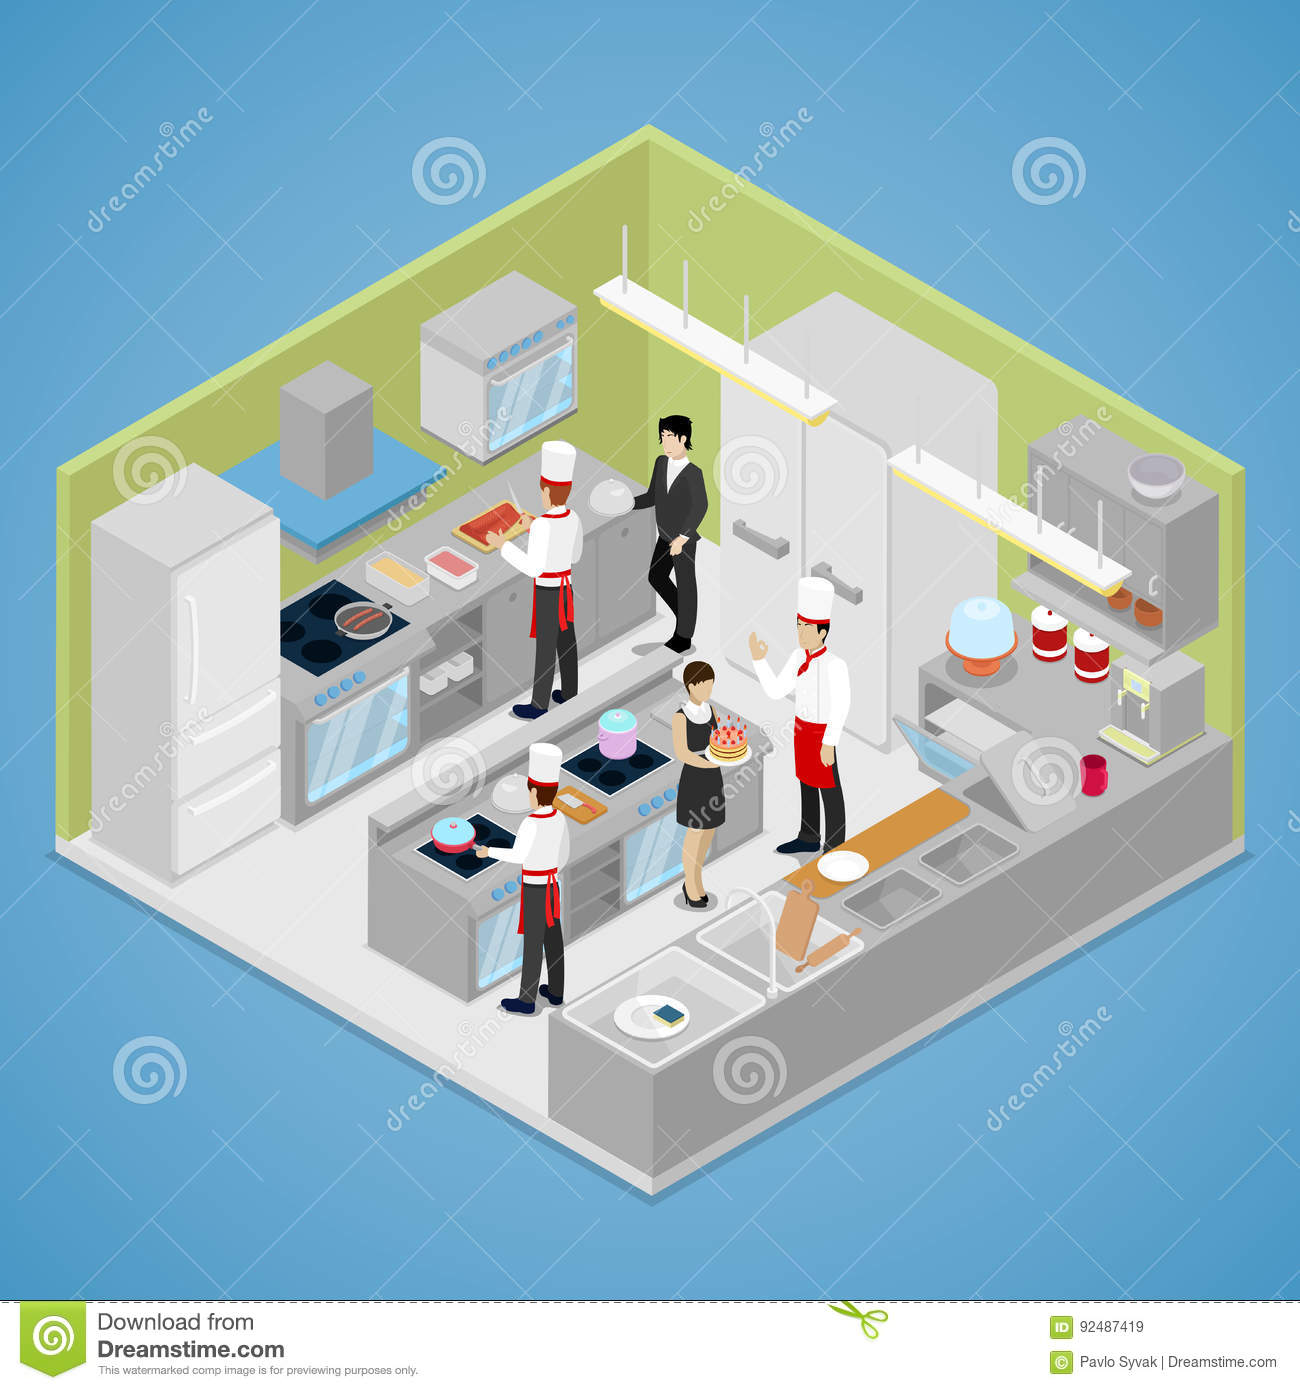 Restaurant Kitchen Illustration restaurant kitchen interior. chef cooking food. isometric flat 3d